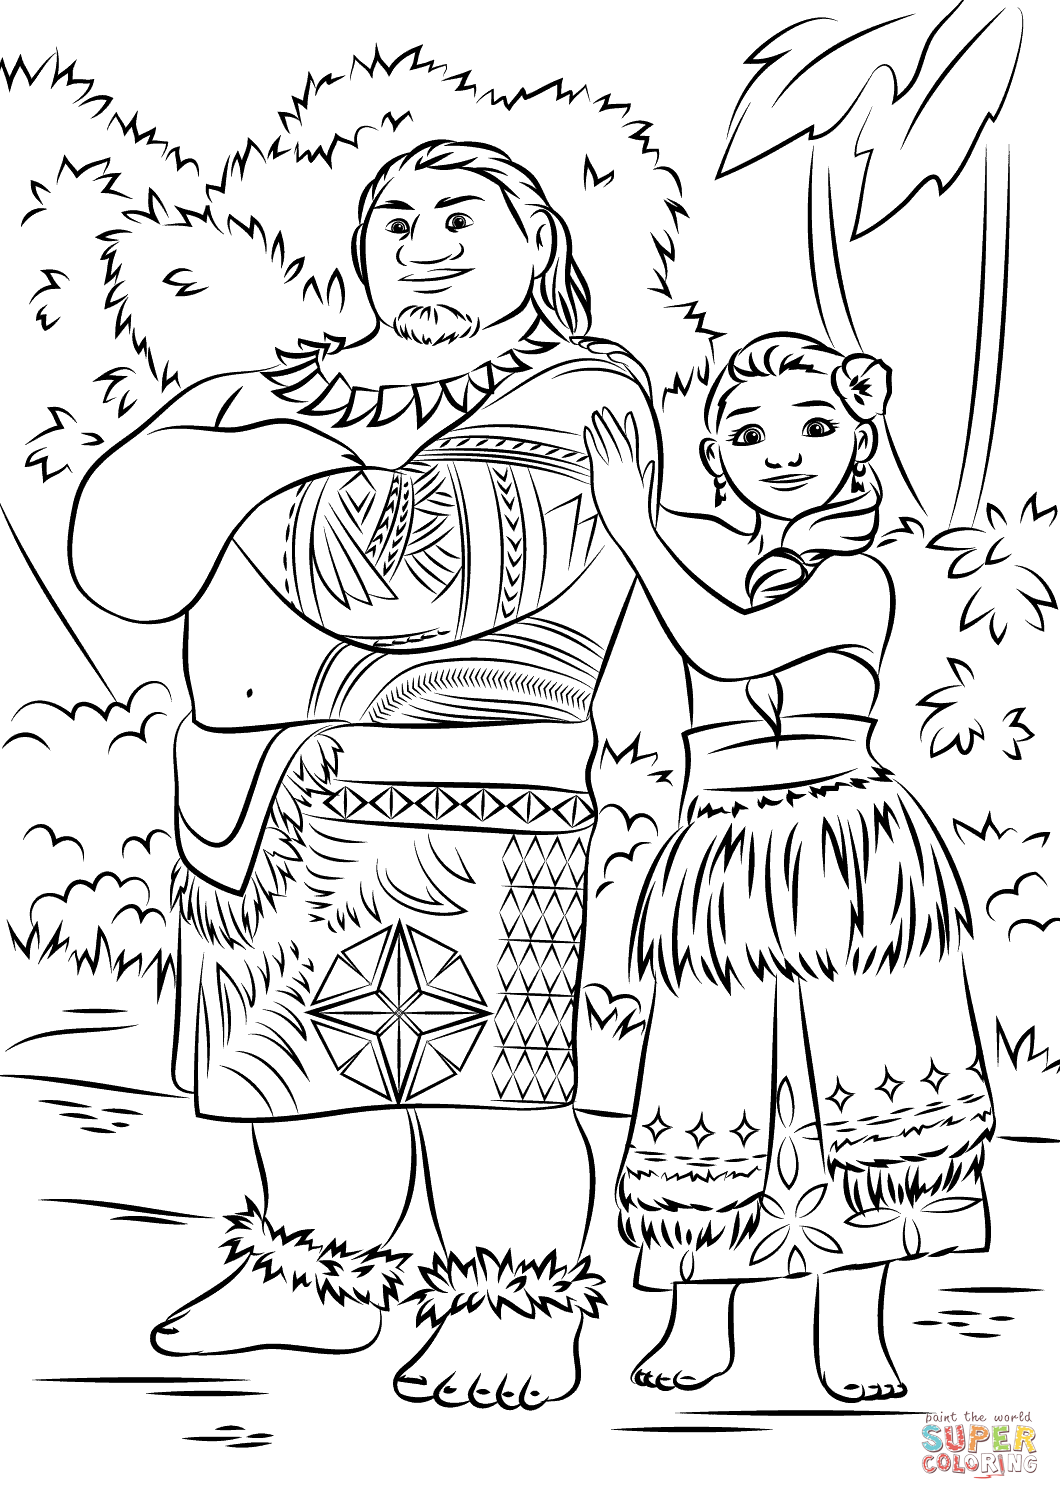 Tui and Sina from Moana coloring page | Free Printable Coloring Pages